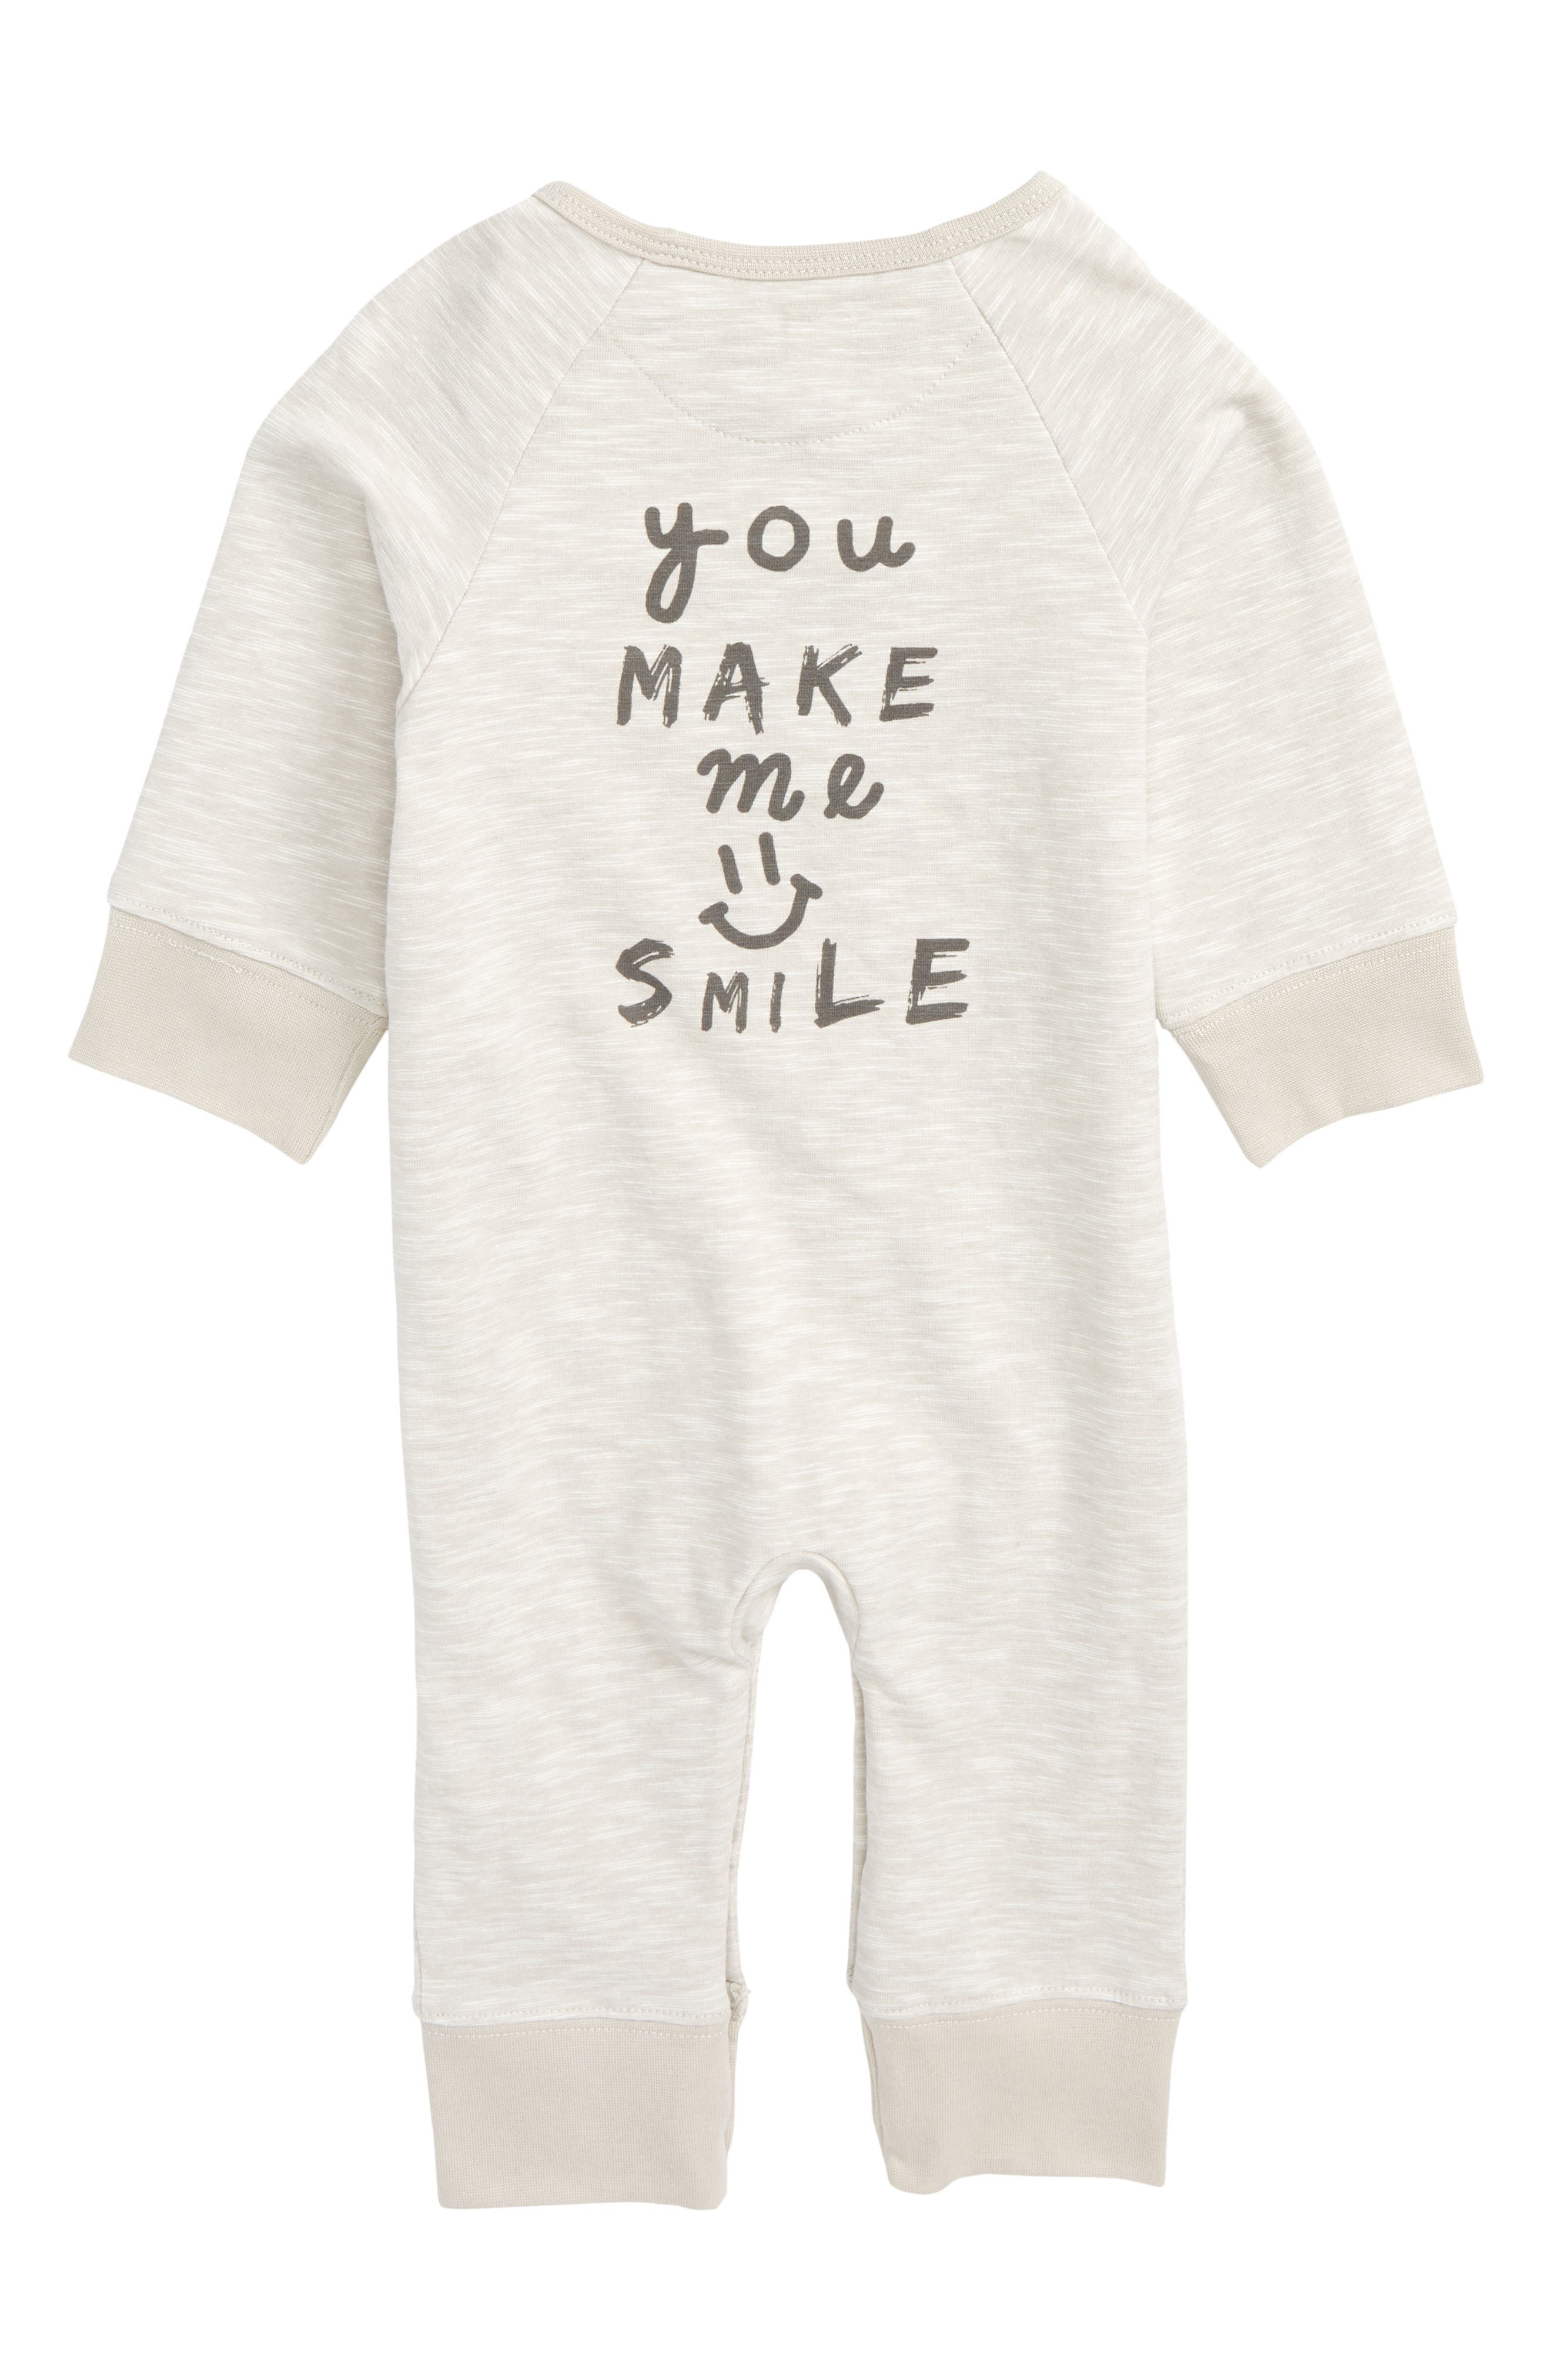 You Make Me Smile Romper,                             Alternate thumbnail 2, color,